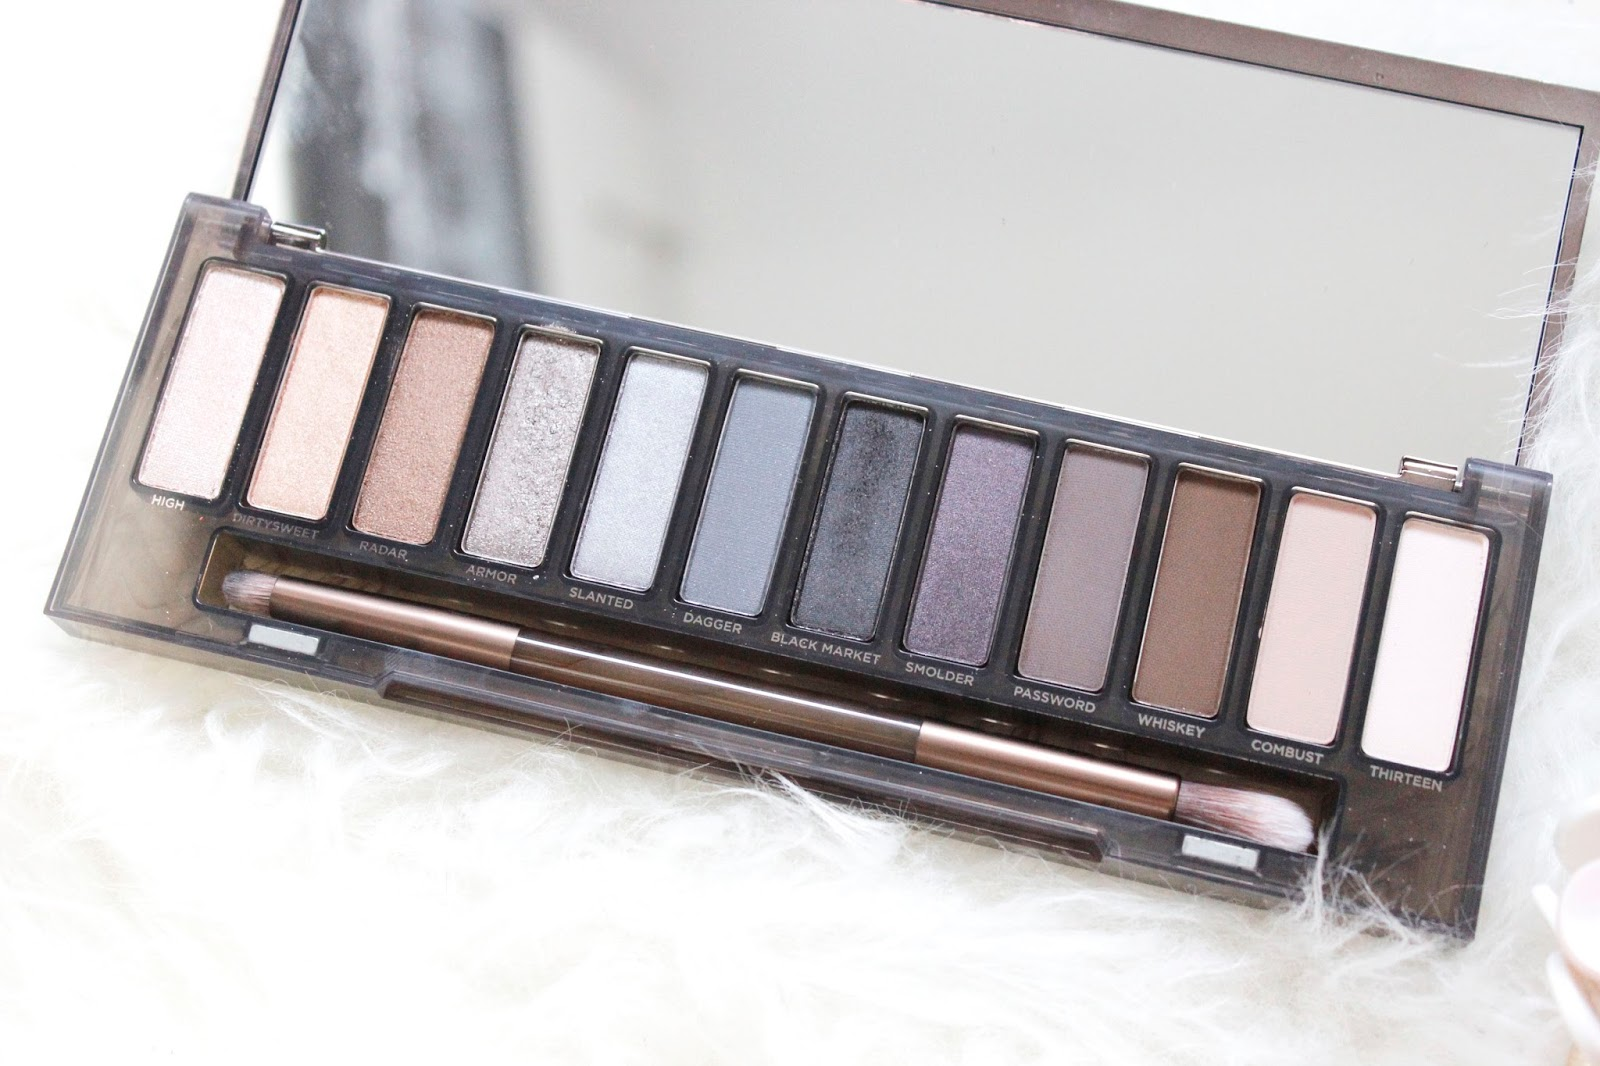 The NUDESTIX Soft & Smokey Palette is a 6-piece collection of soft and smokey shades curated by Youtuber Melissa Alatorre (@alatorreee) to go from #babeboss to #partybabe in just 10 minutes.5/5(3).